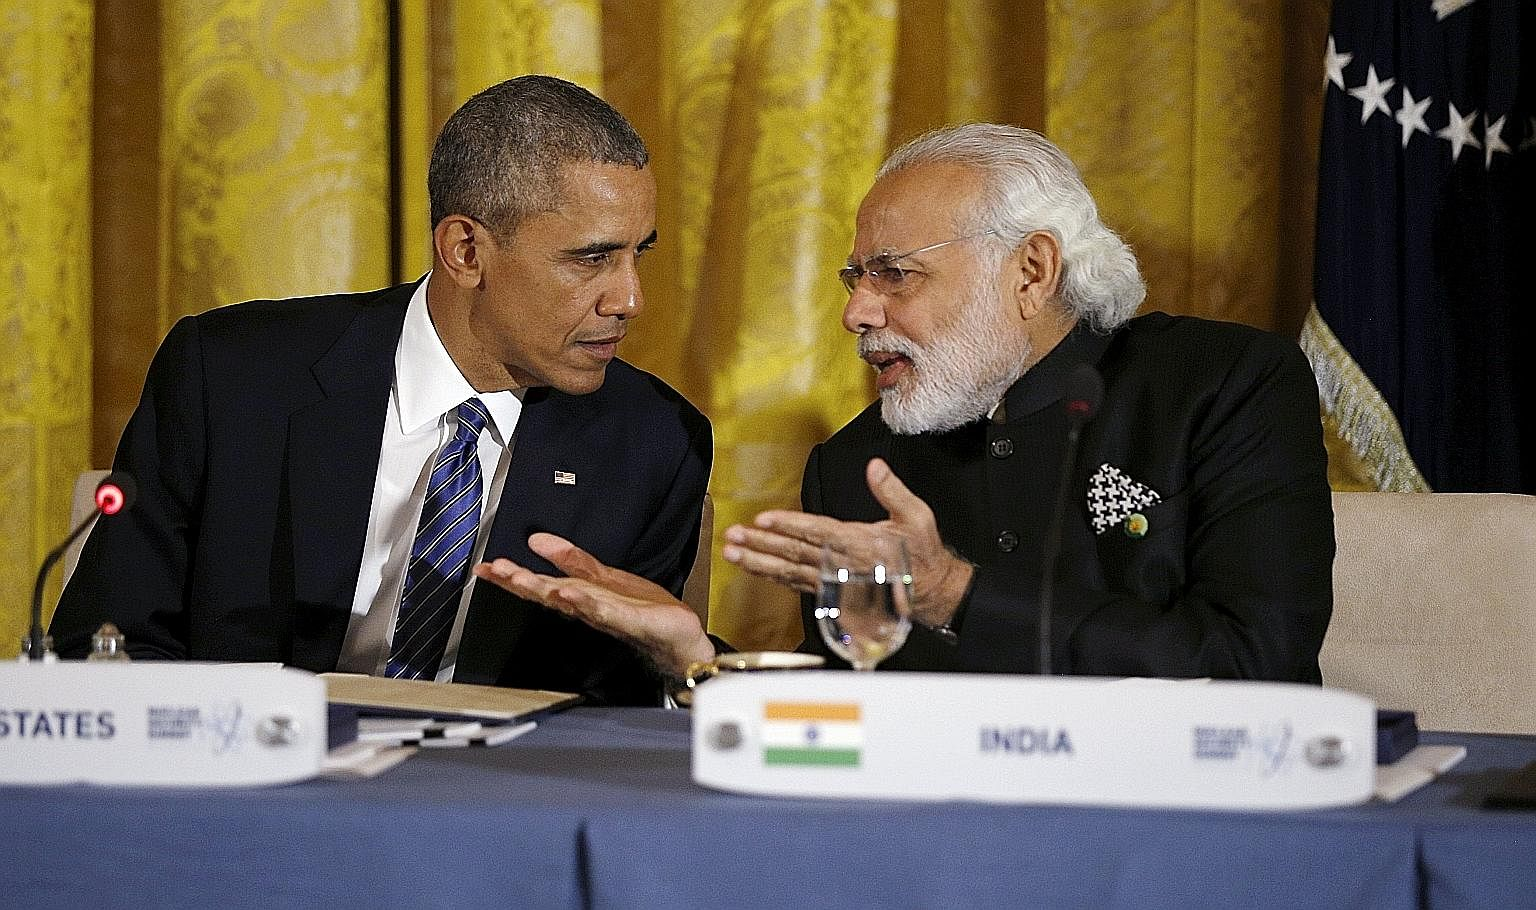 Mr Obama speaking with Mr Modi during a working dinner at the White House earlier this year. The two leaders have developed a strong personal rapport.